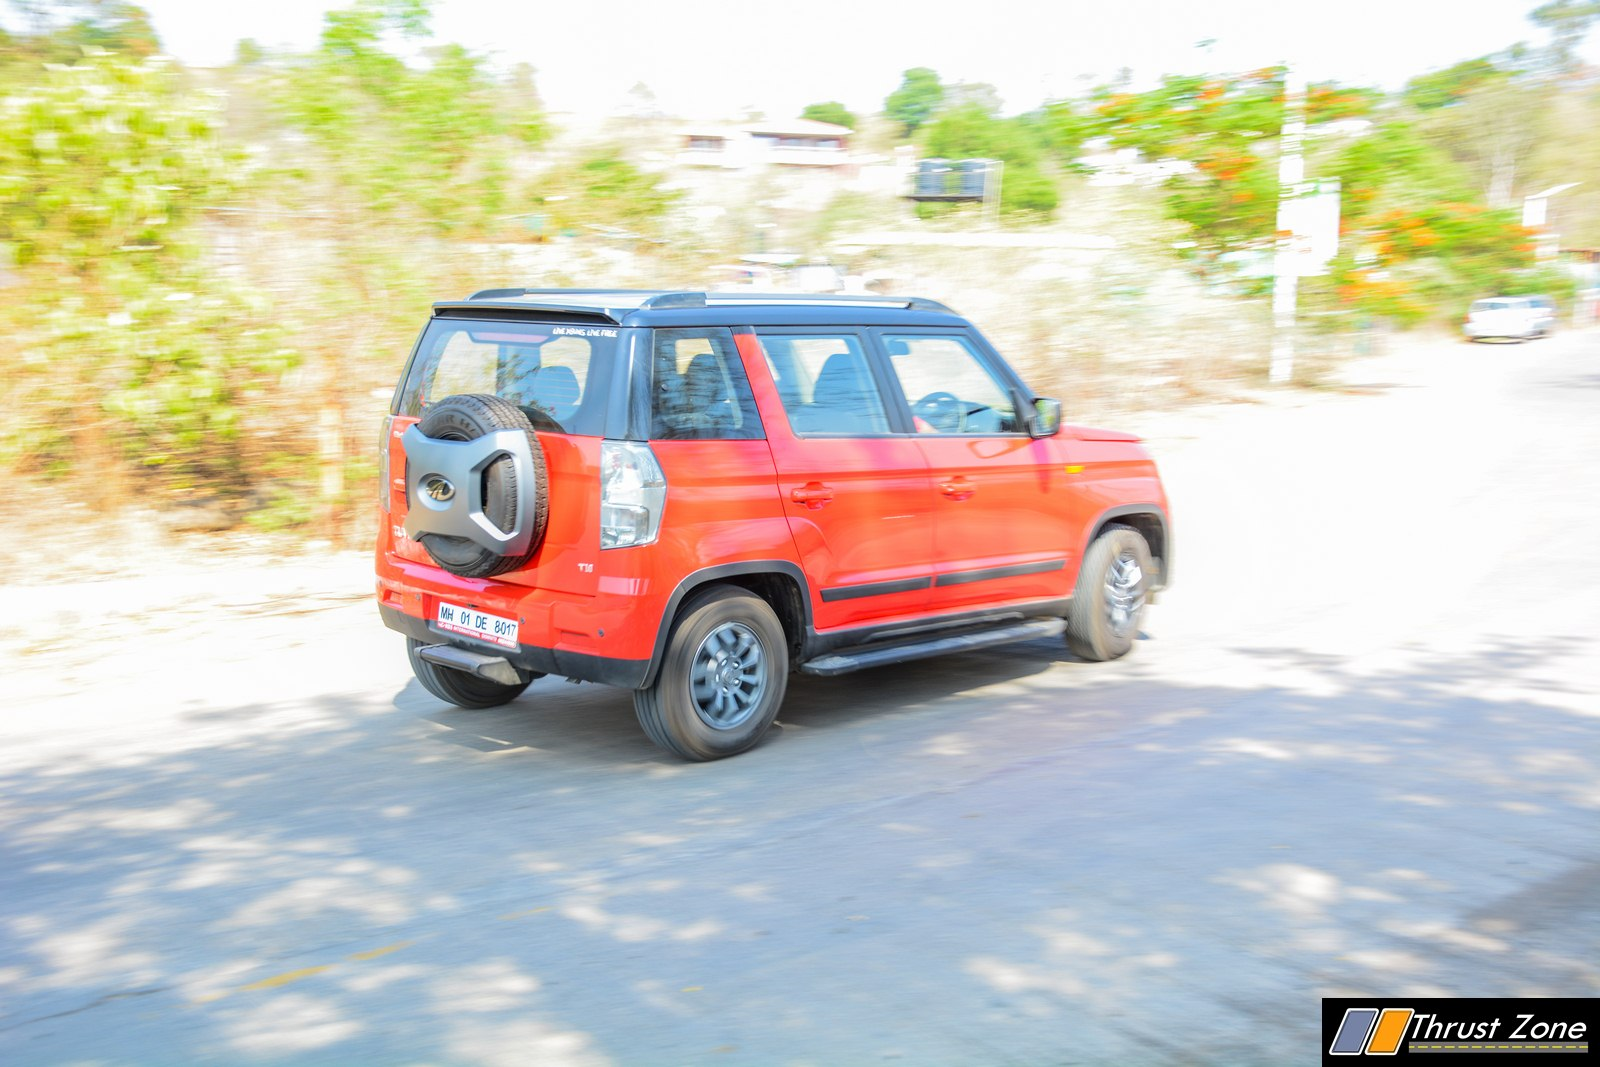 https://www.thrustzone.com/wp-content/uploads/2019/06/2019-mahindra-tuv-300-facelift-review-5-2.jpg